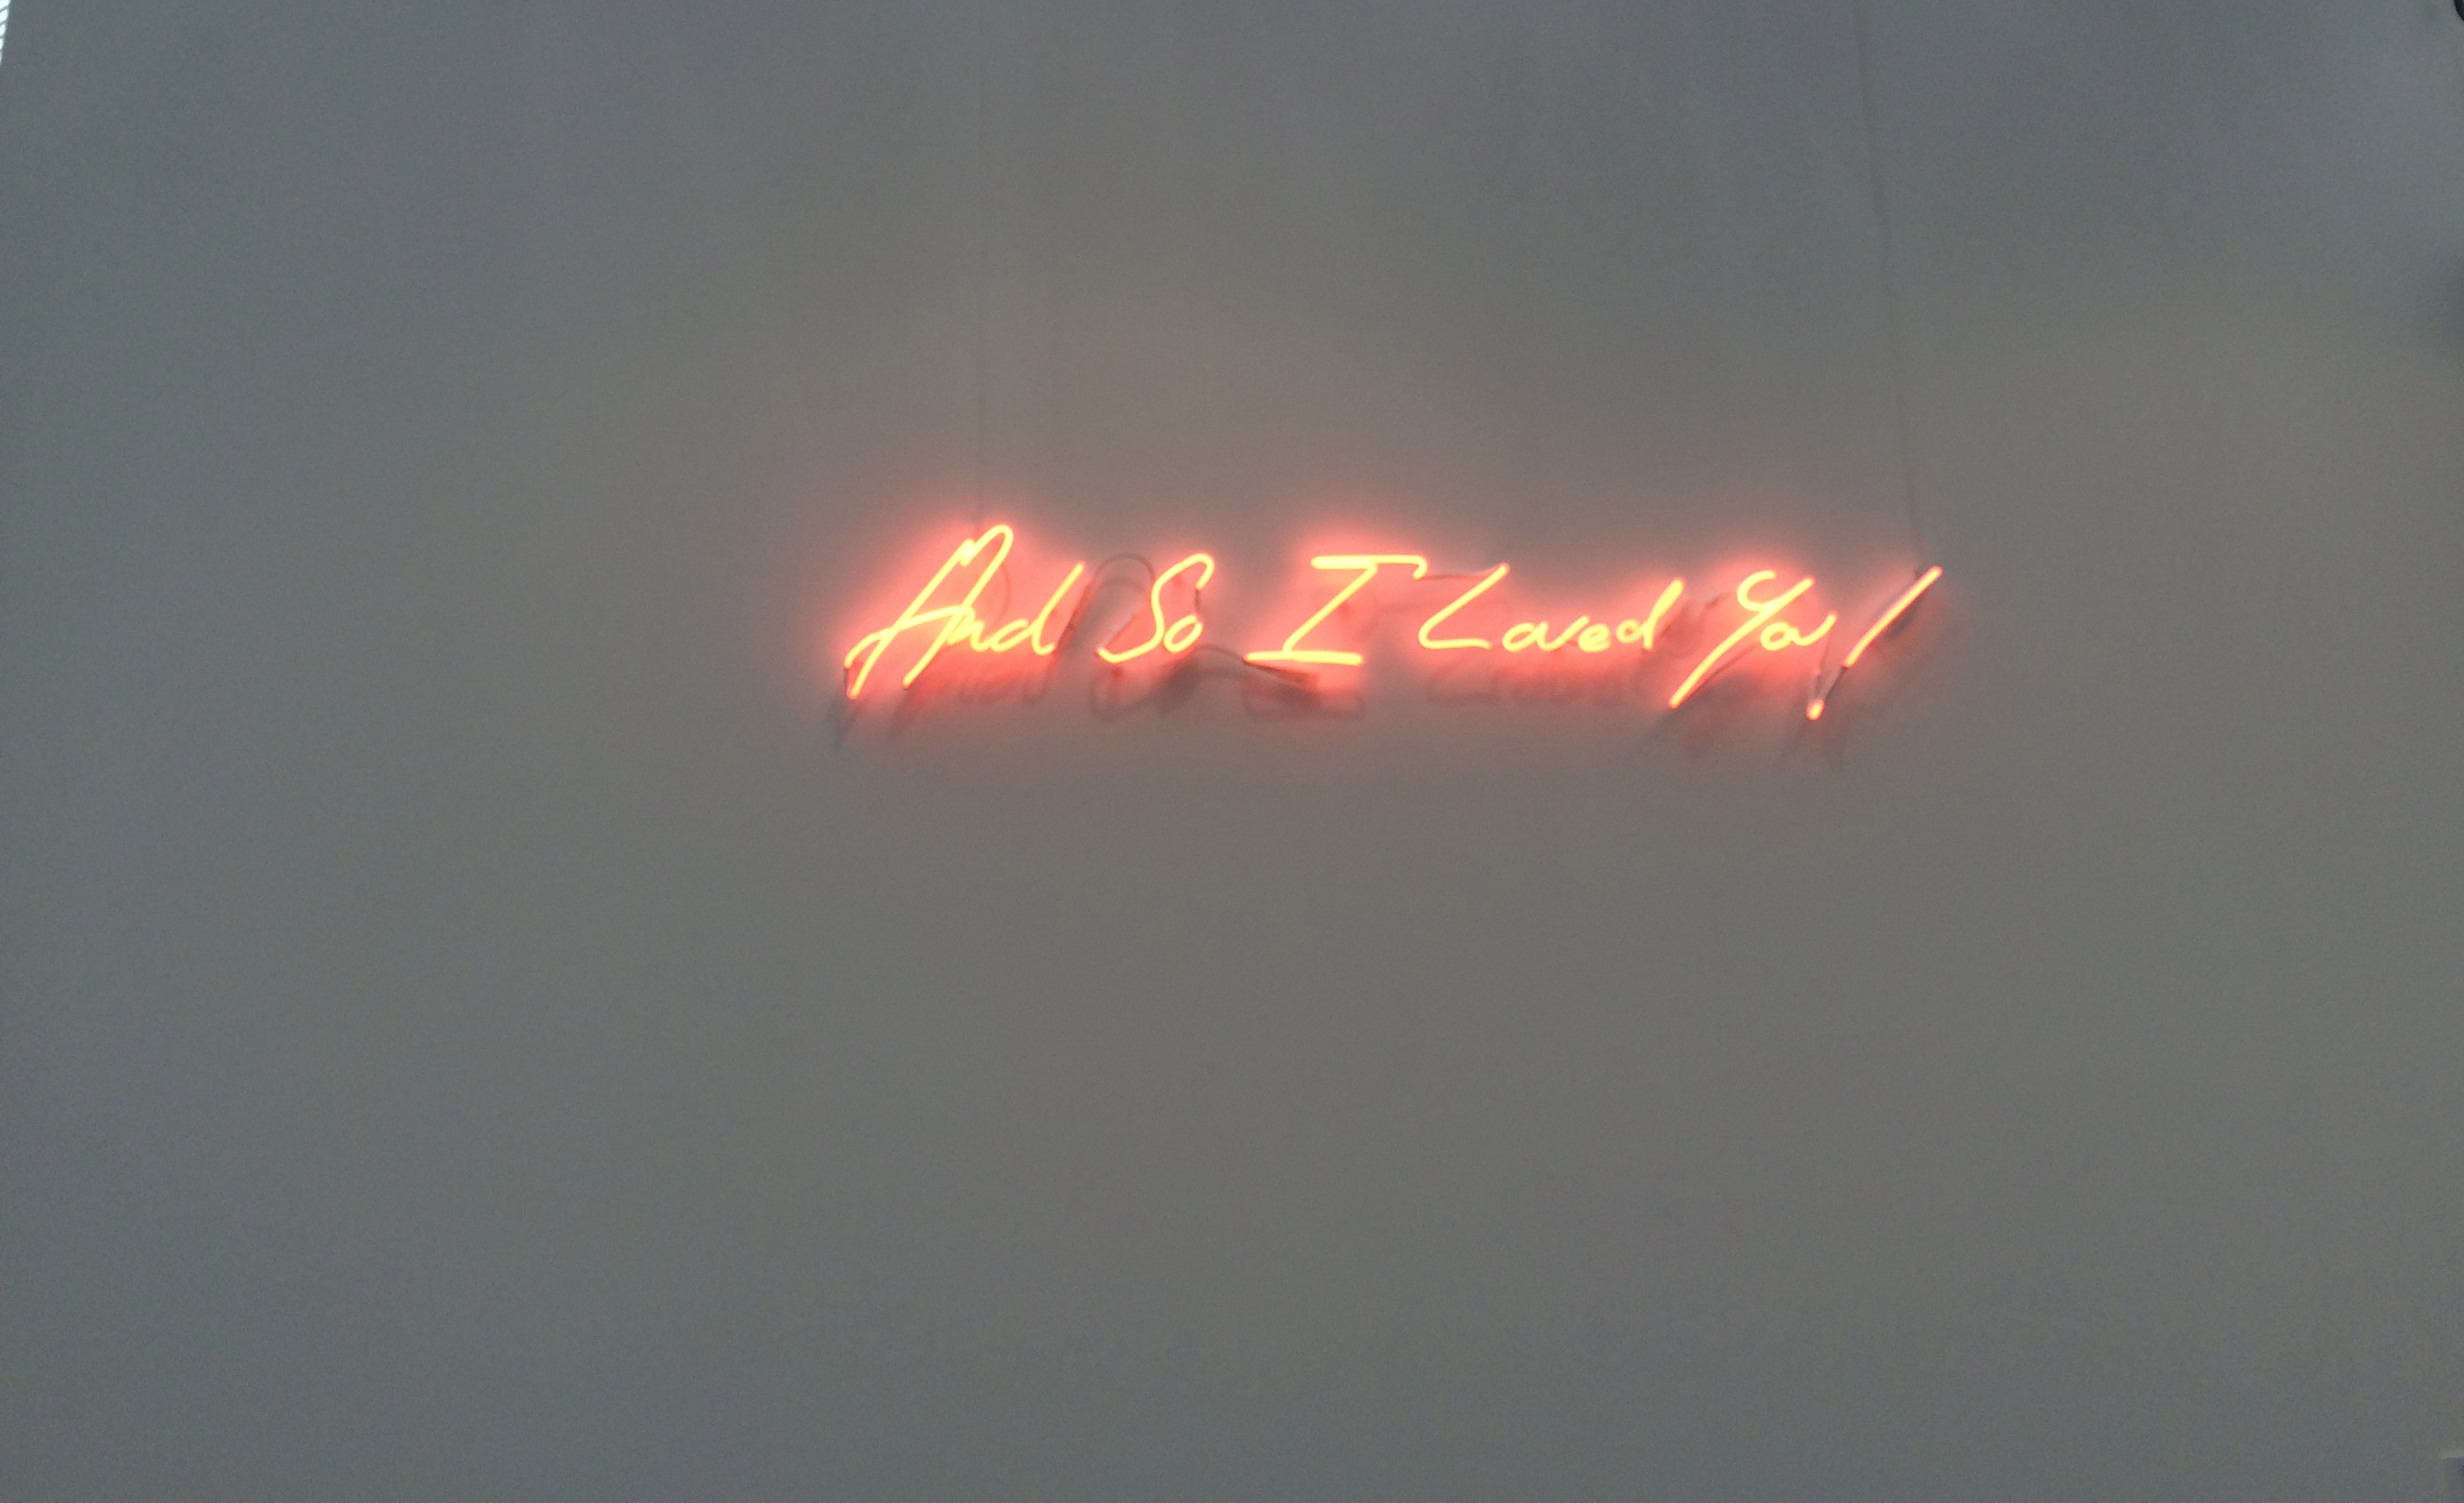 """Tracey Emin, """"And So I Loved You!"""", 2015"""